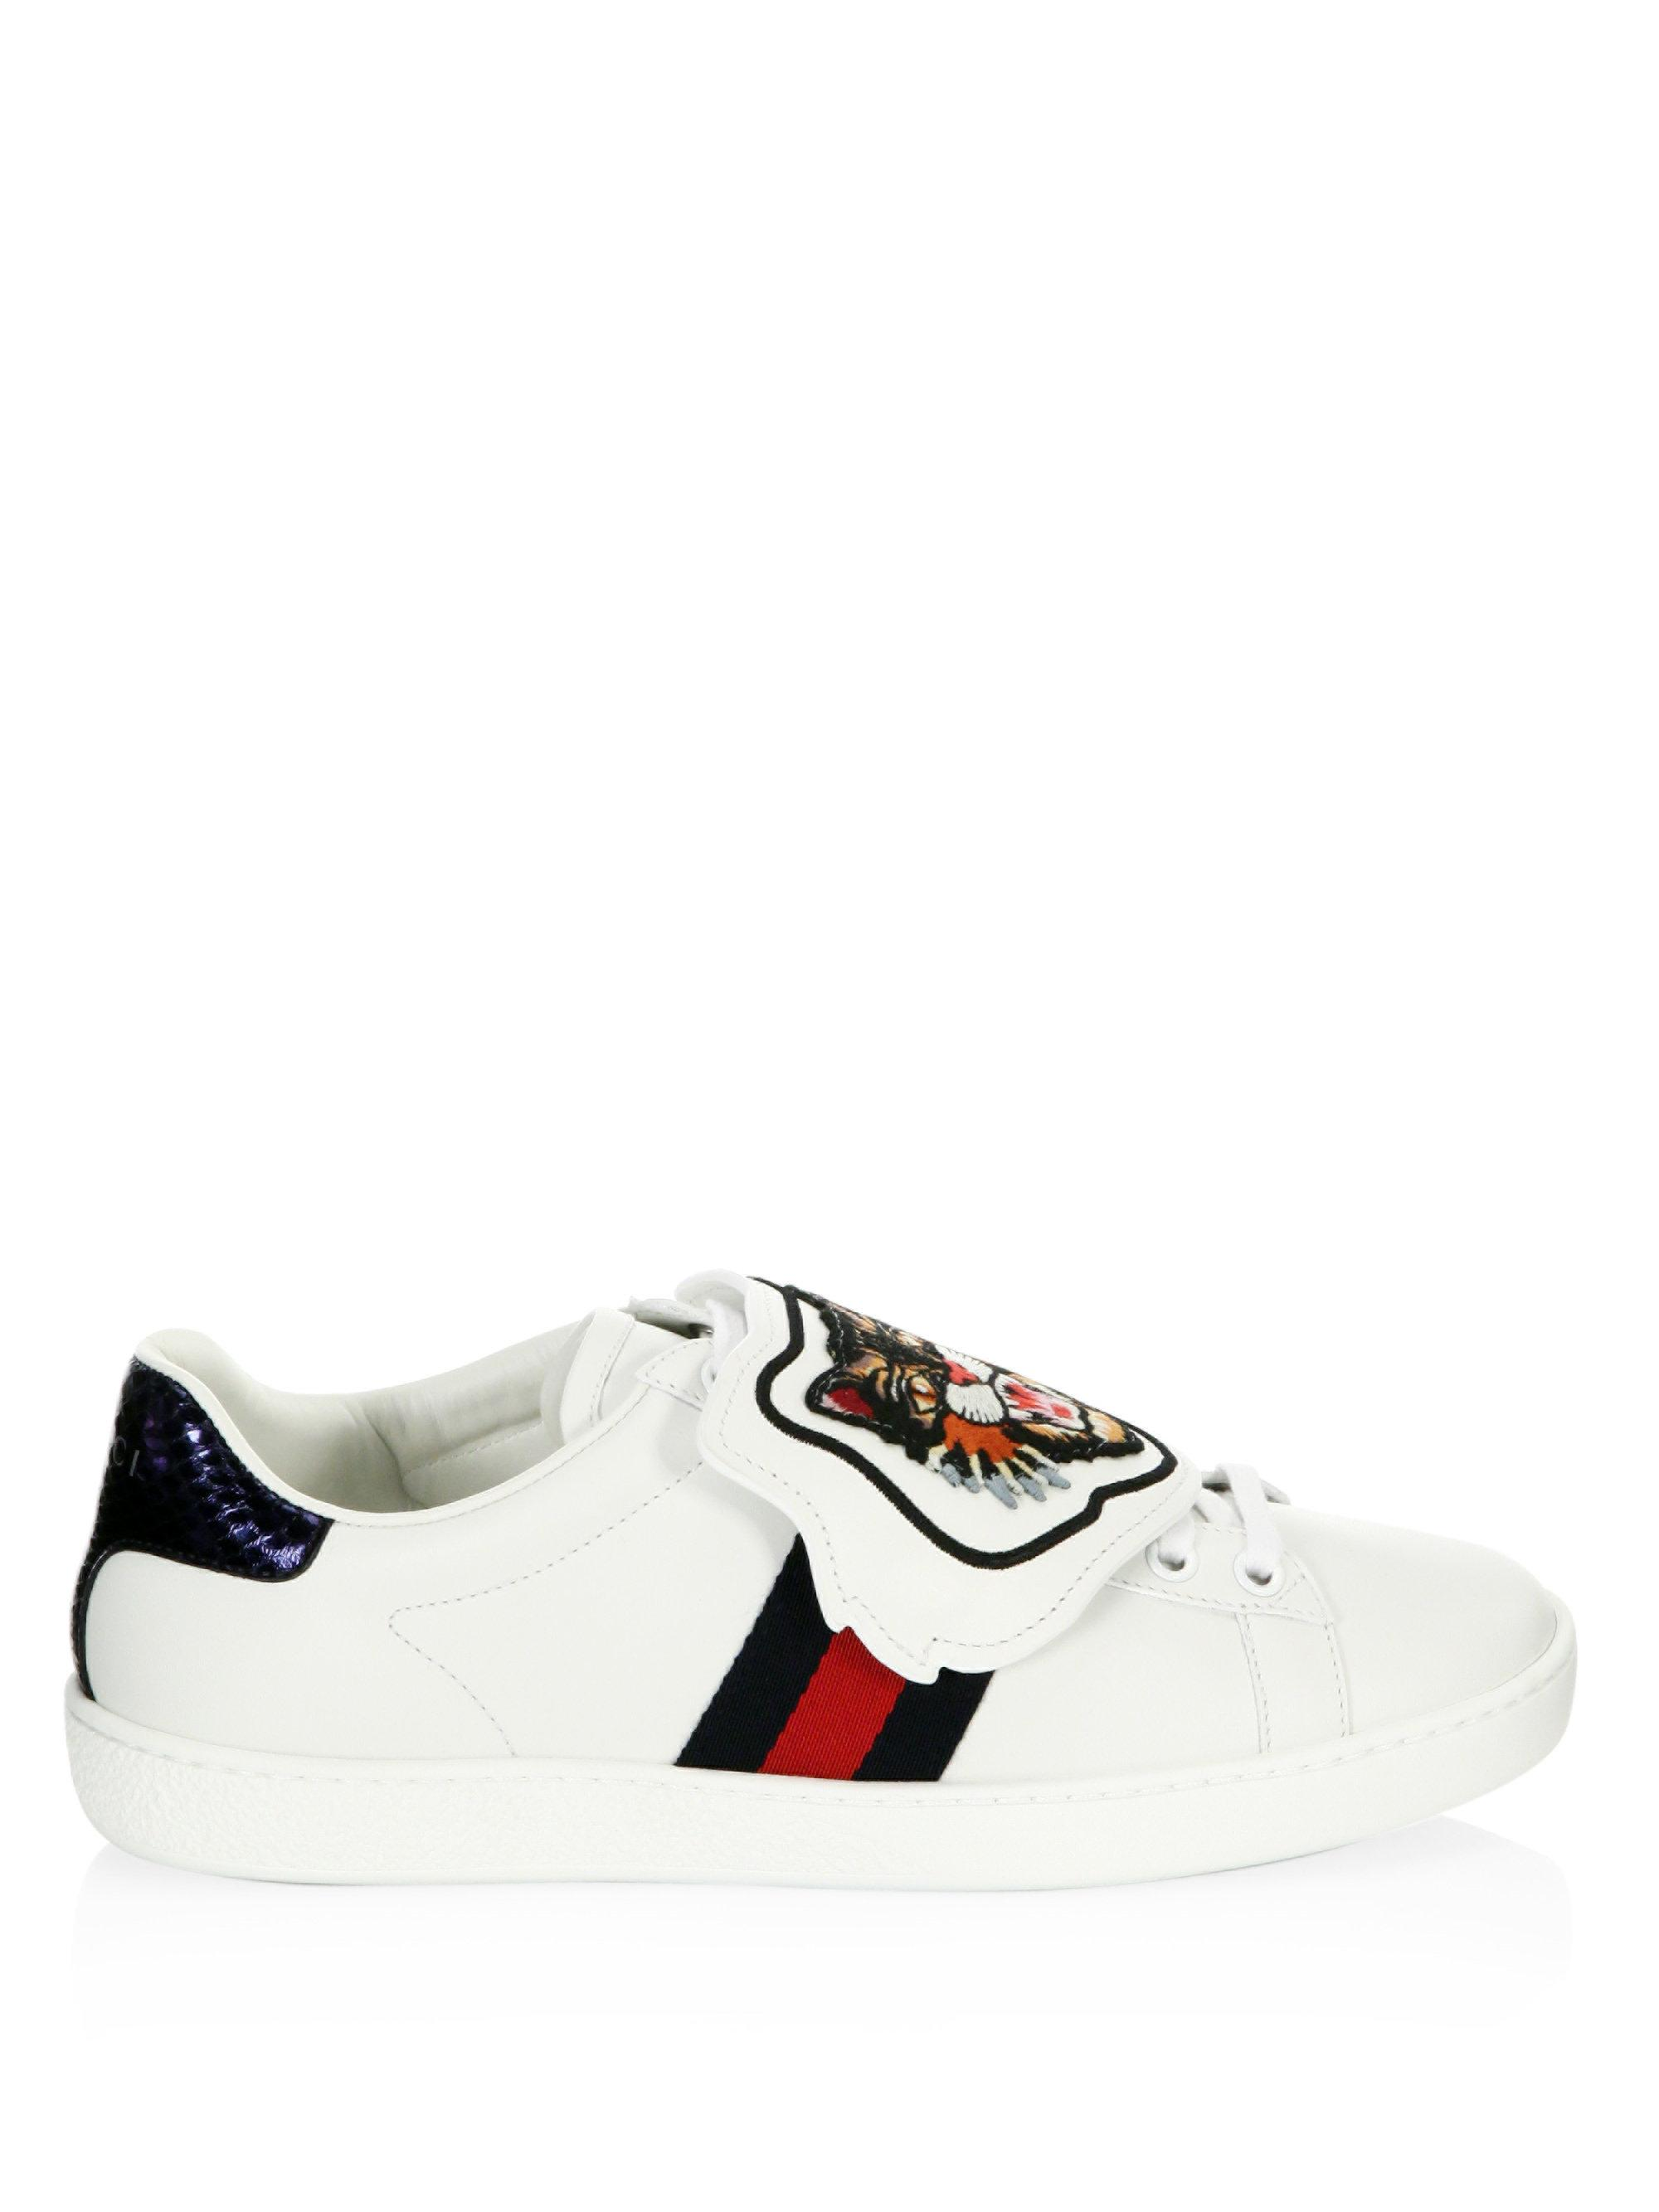 5332ad58303 Gucci New Ace Lion Patch Sneakers in White - Lyst